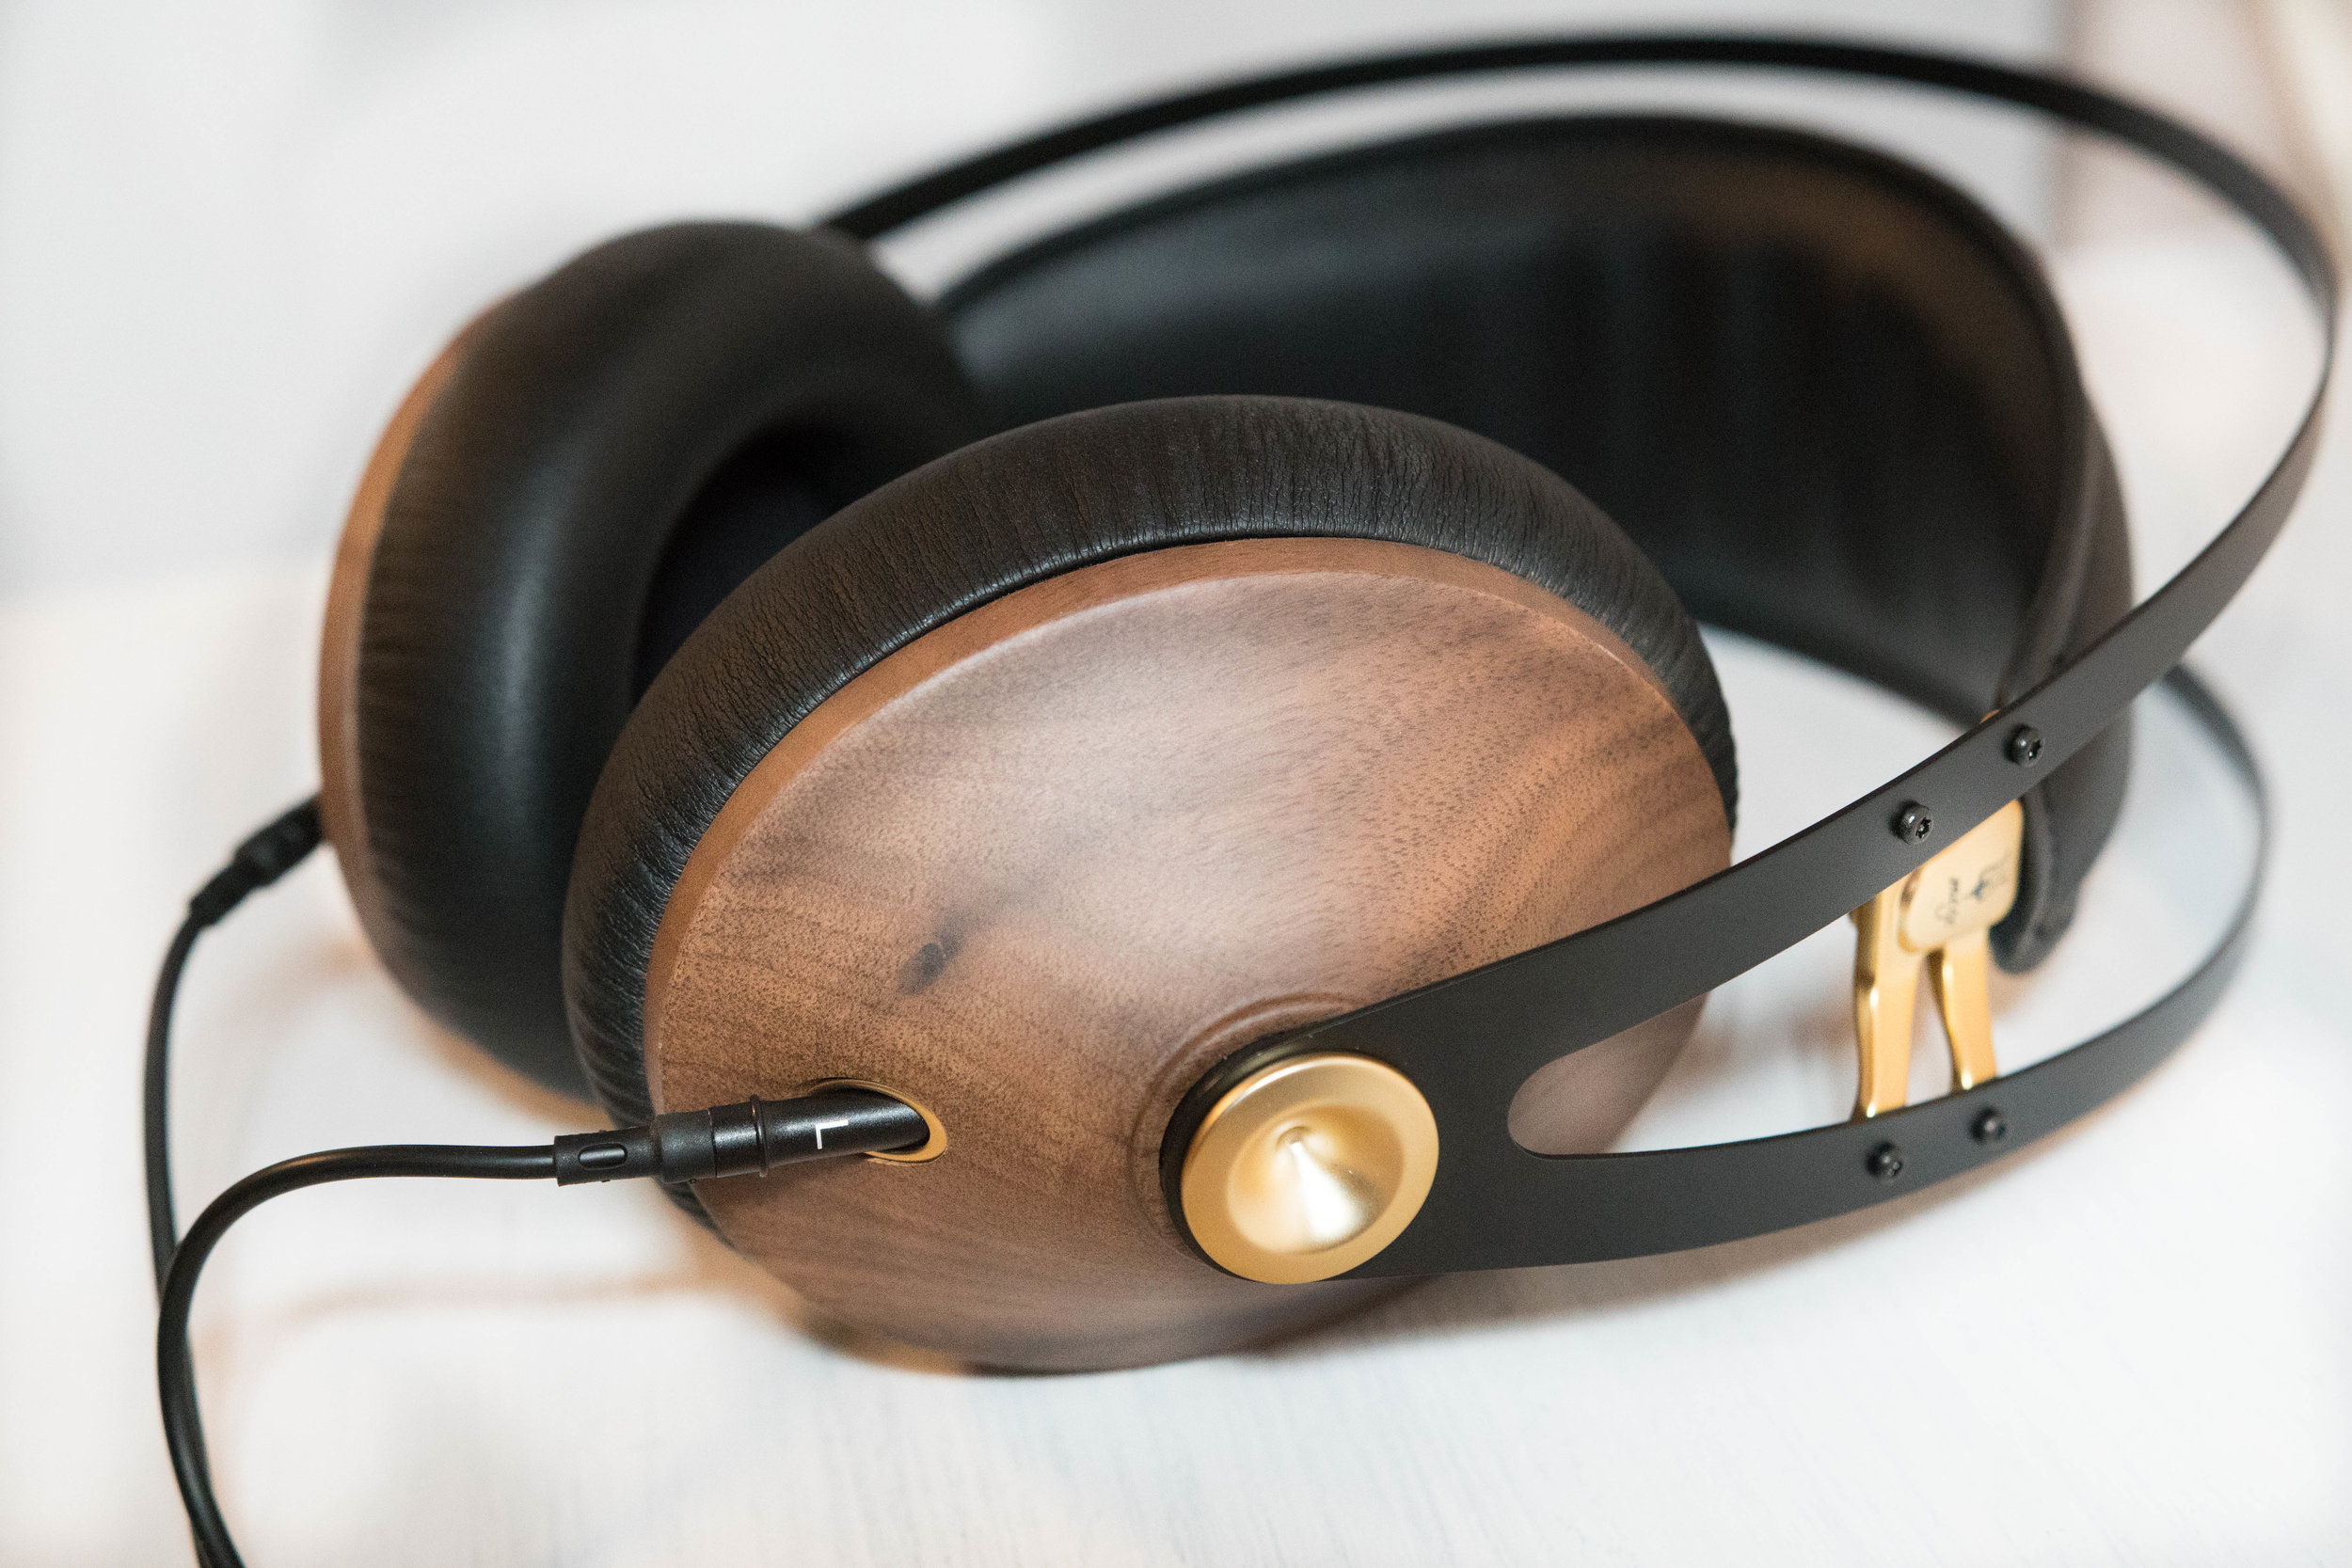 Meze 99 Classic headphone review - Walnut wood and brass finish.